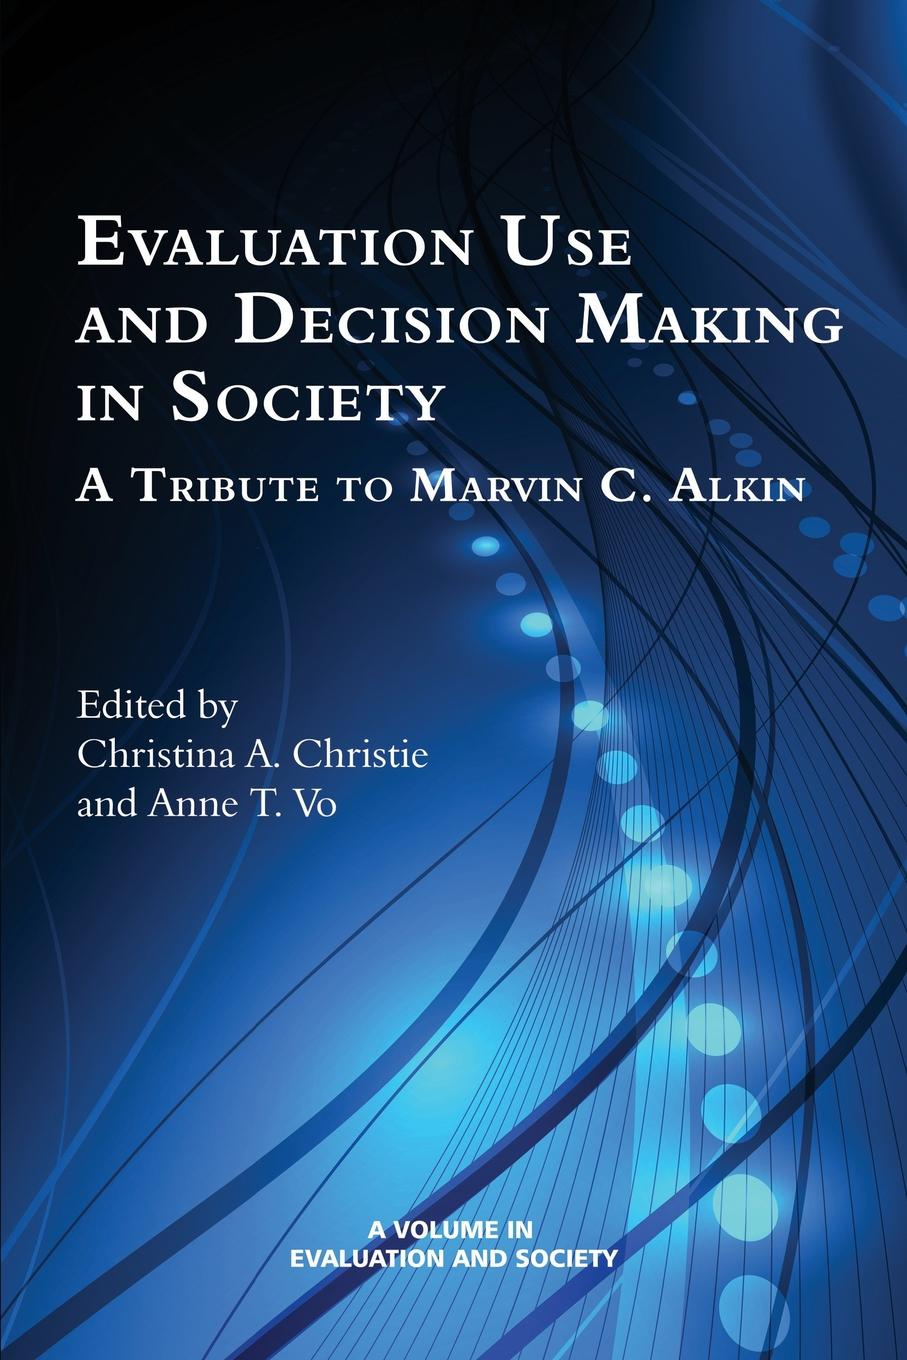 Evaluation Use and Decision-Making in Society. A Tribute to Marvin C. Alkin